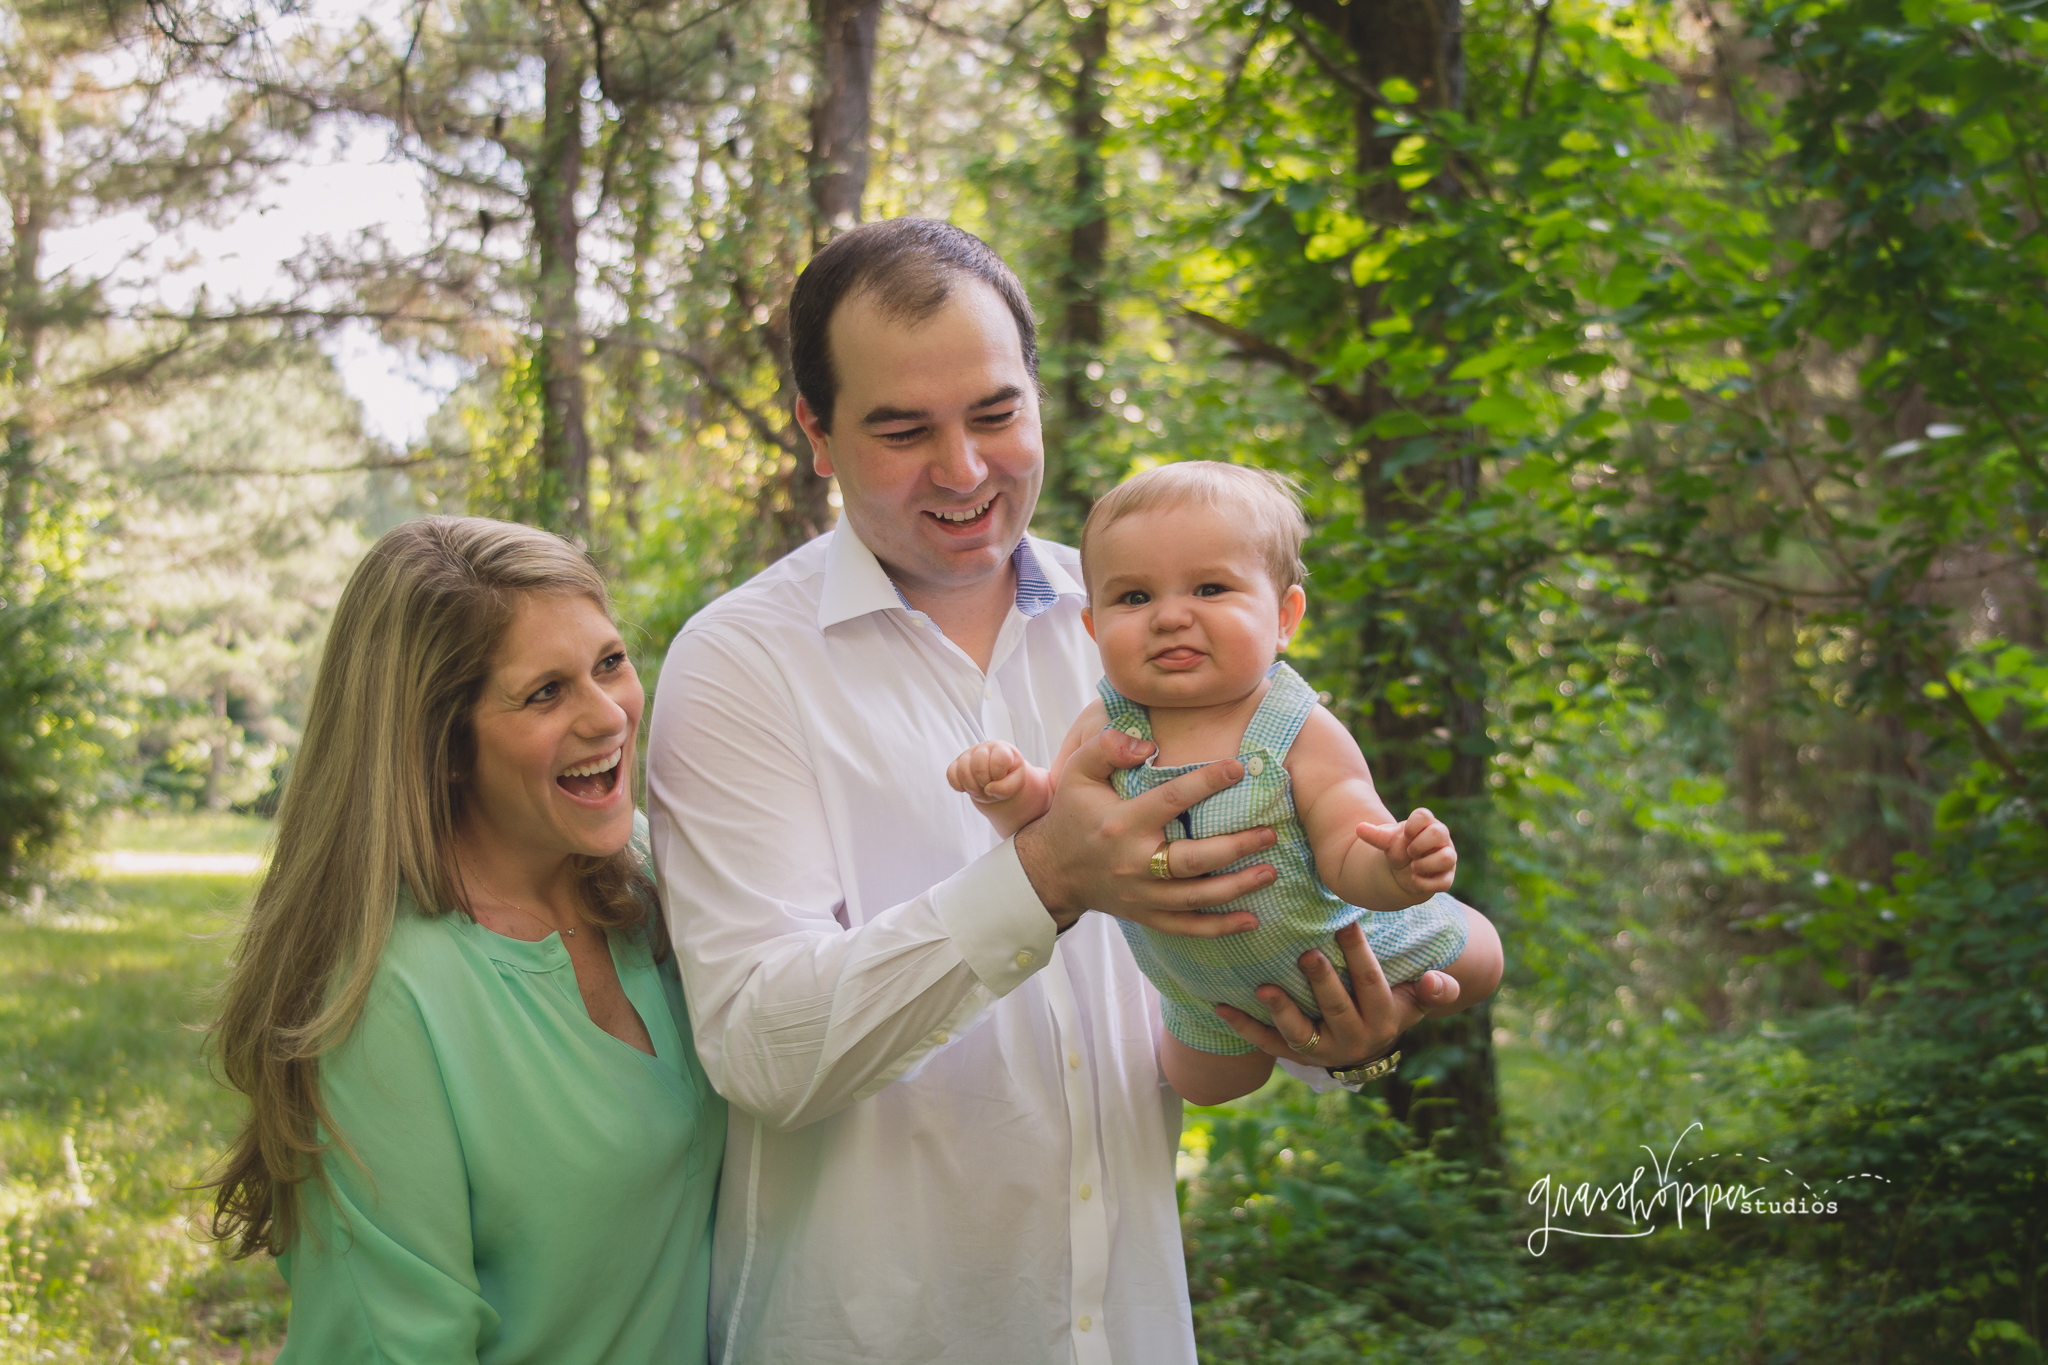 Jackson, TN family photographer